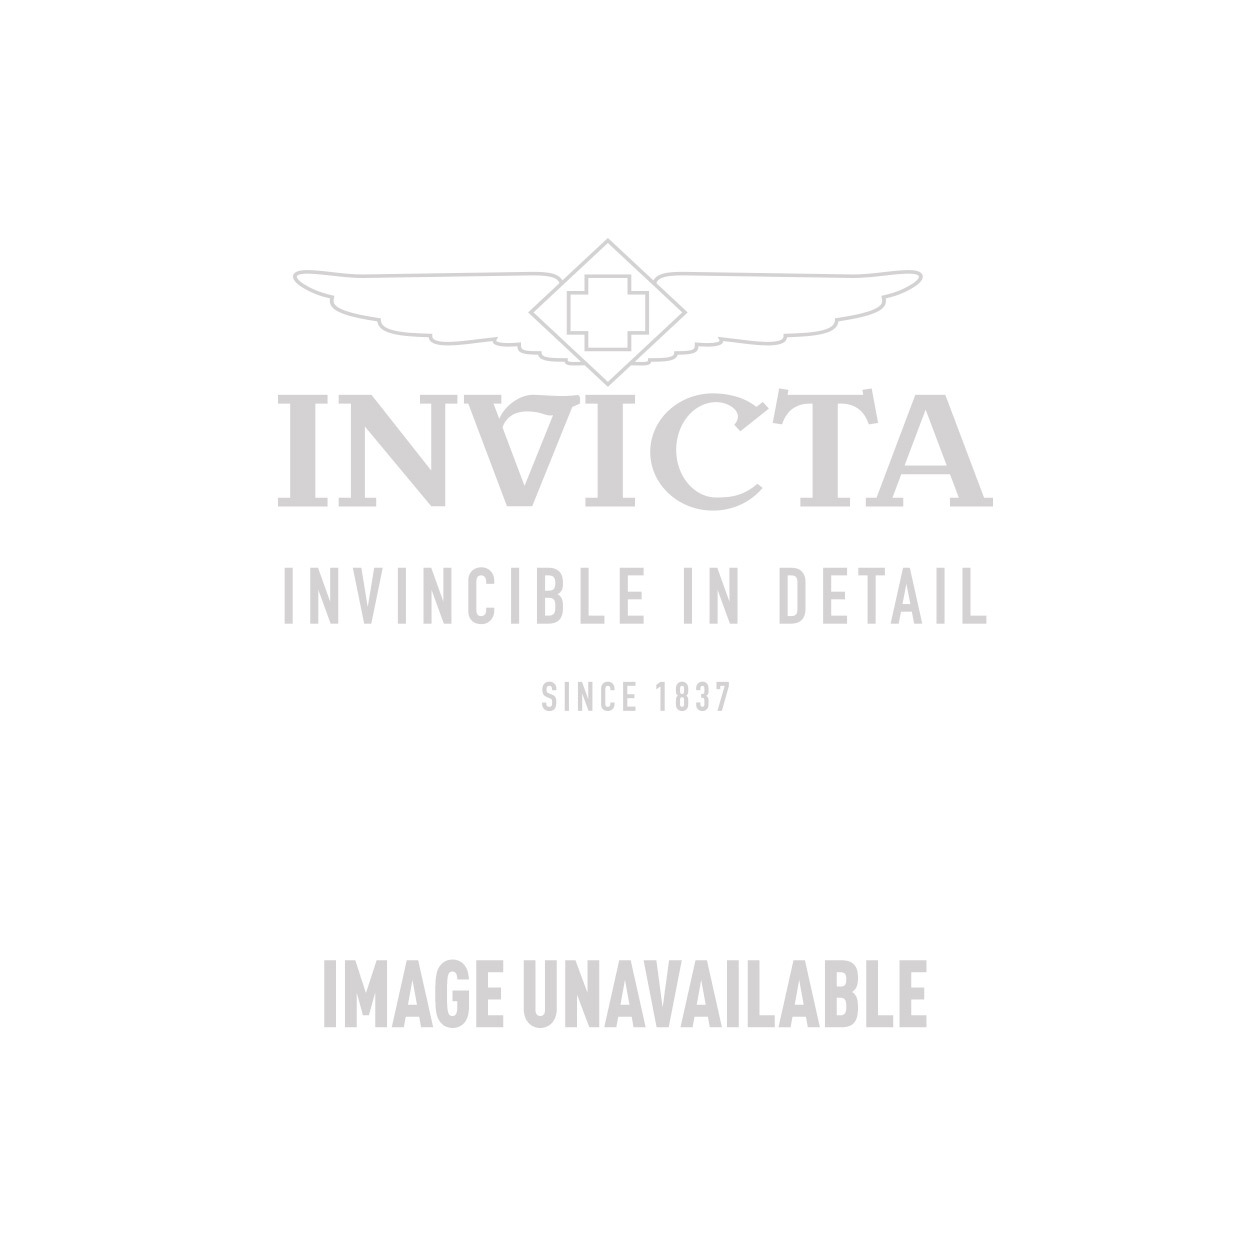 Invicta Coalition Forces Swiss Made Quartz Watch - Titanium case with Brown tone Polyurethane band - Model 10018